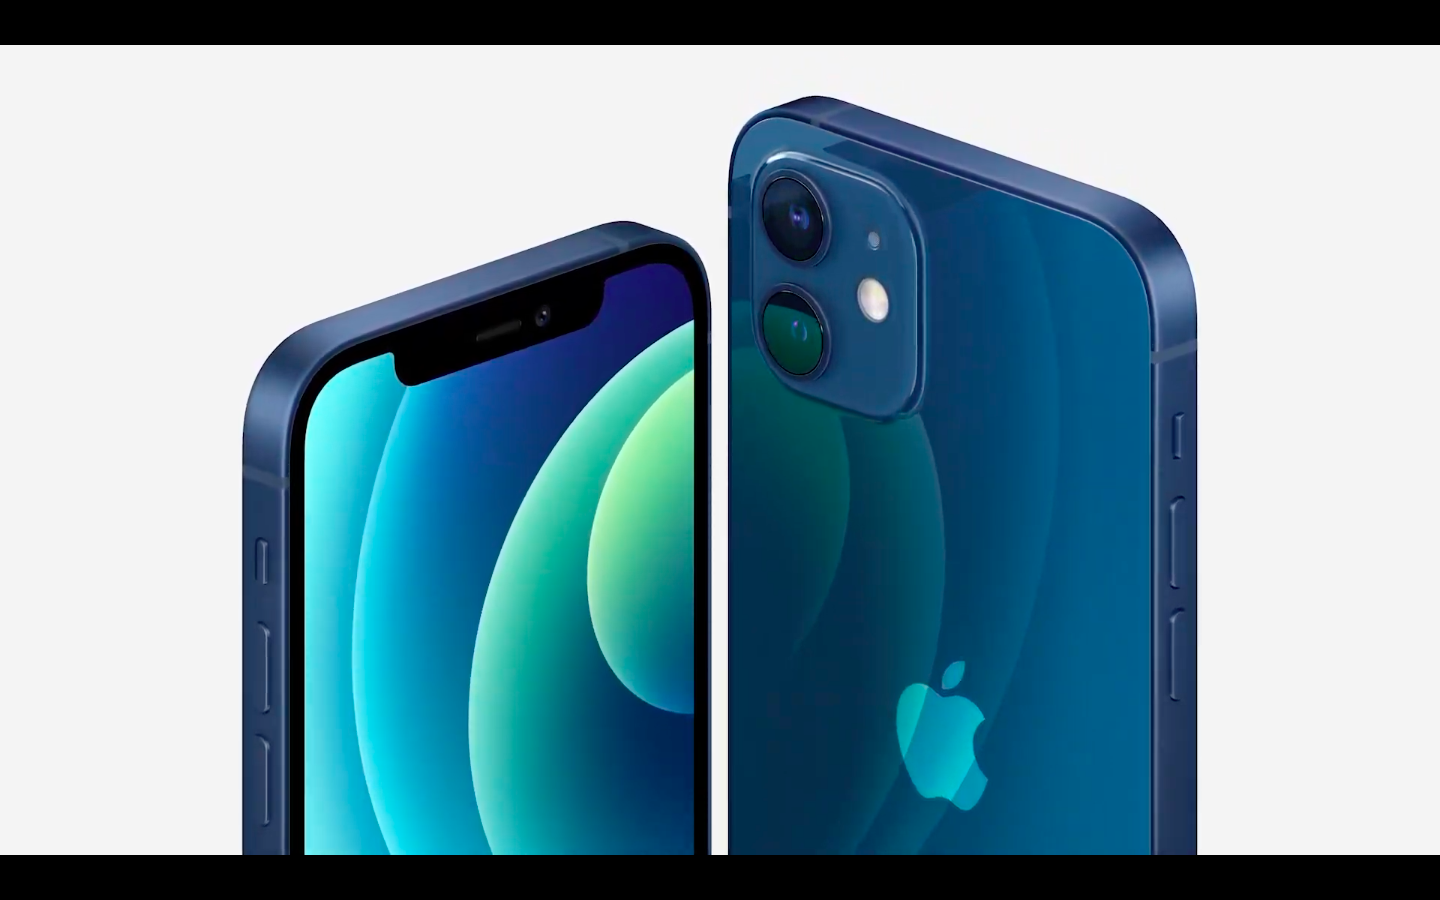 iPhone 12 Pro With Dolby Vision HDR Video Recording Launched; iPhone 12, iPhone 12 mini, HomePod mini Launched